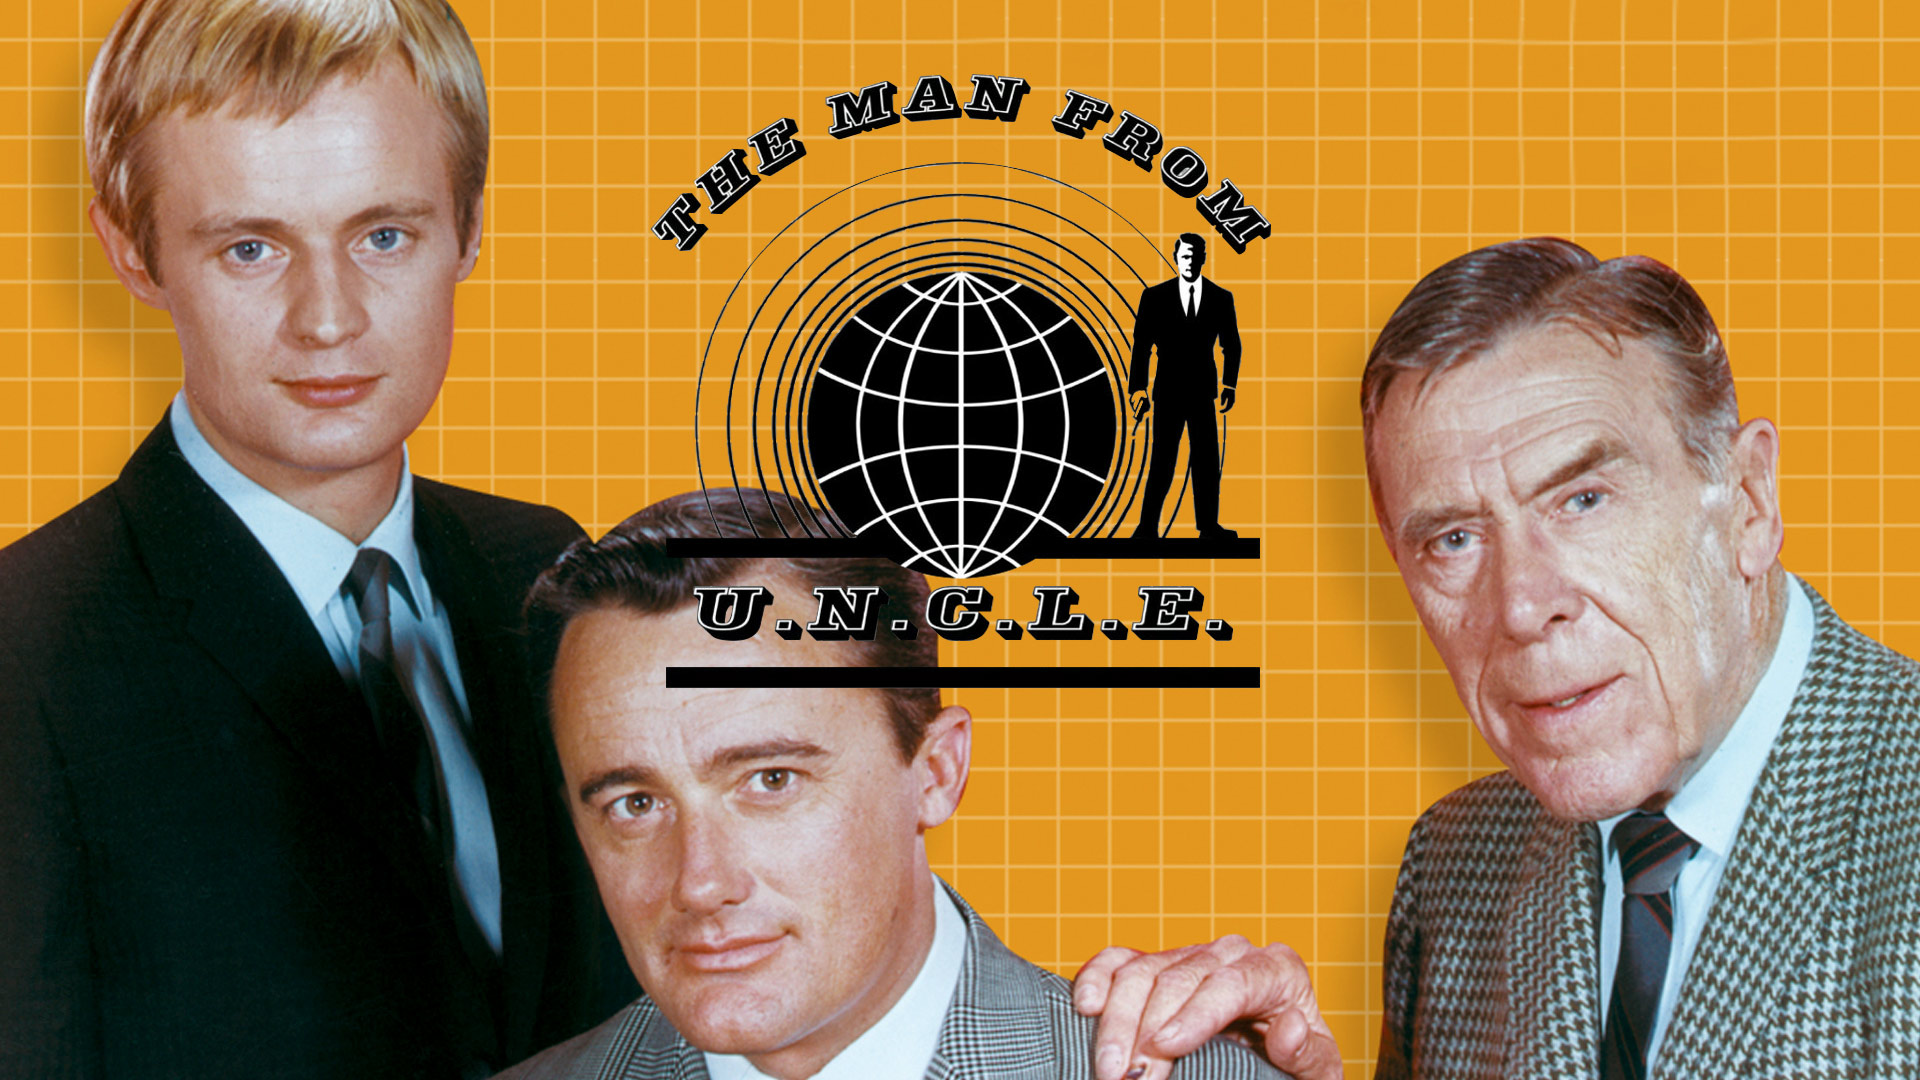 The Man from U.N.C.L.E: The Complete First Season